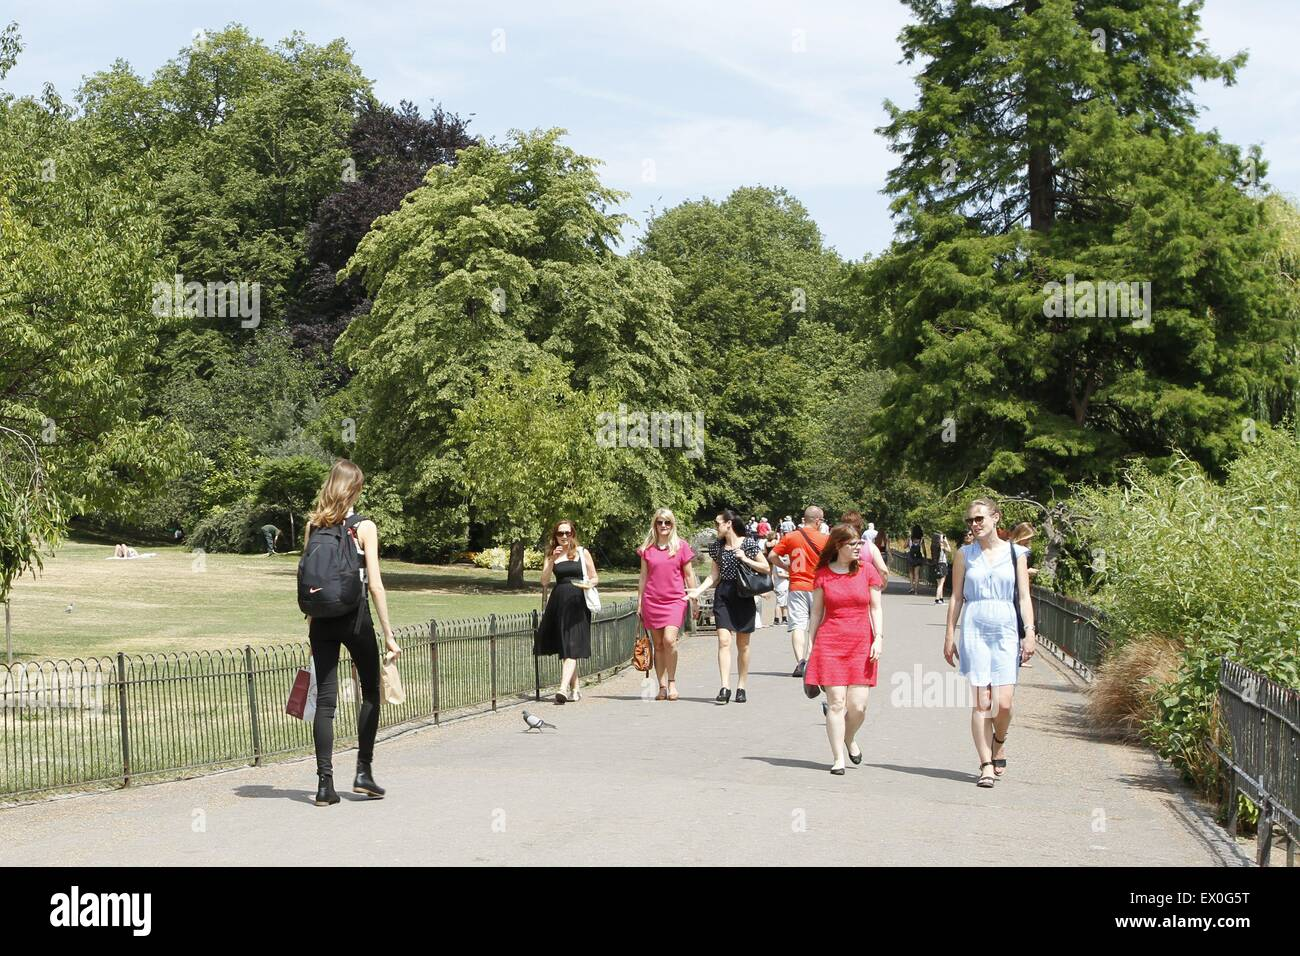 London, UK. 03rd July, 2015. UK weather Tourists enjoy the continued good weather in sunny St. James Park, London, - Stock Image